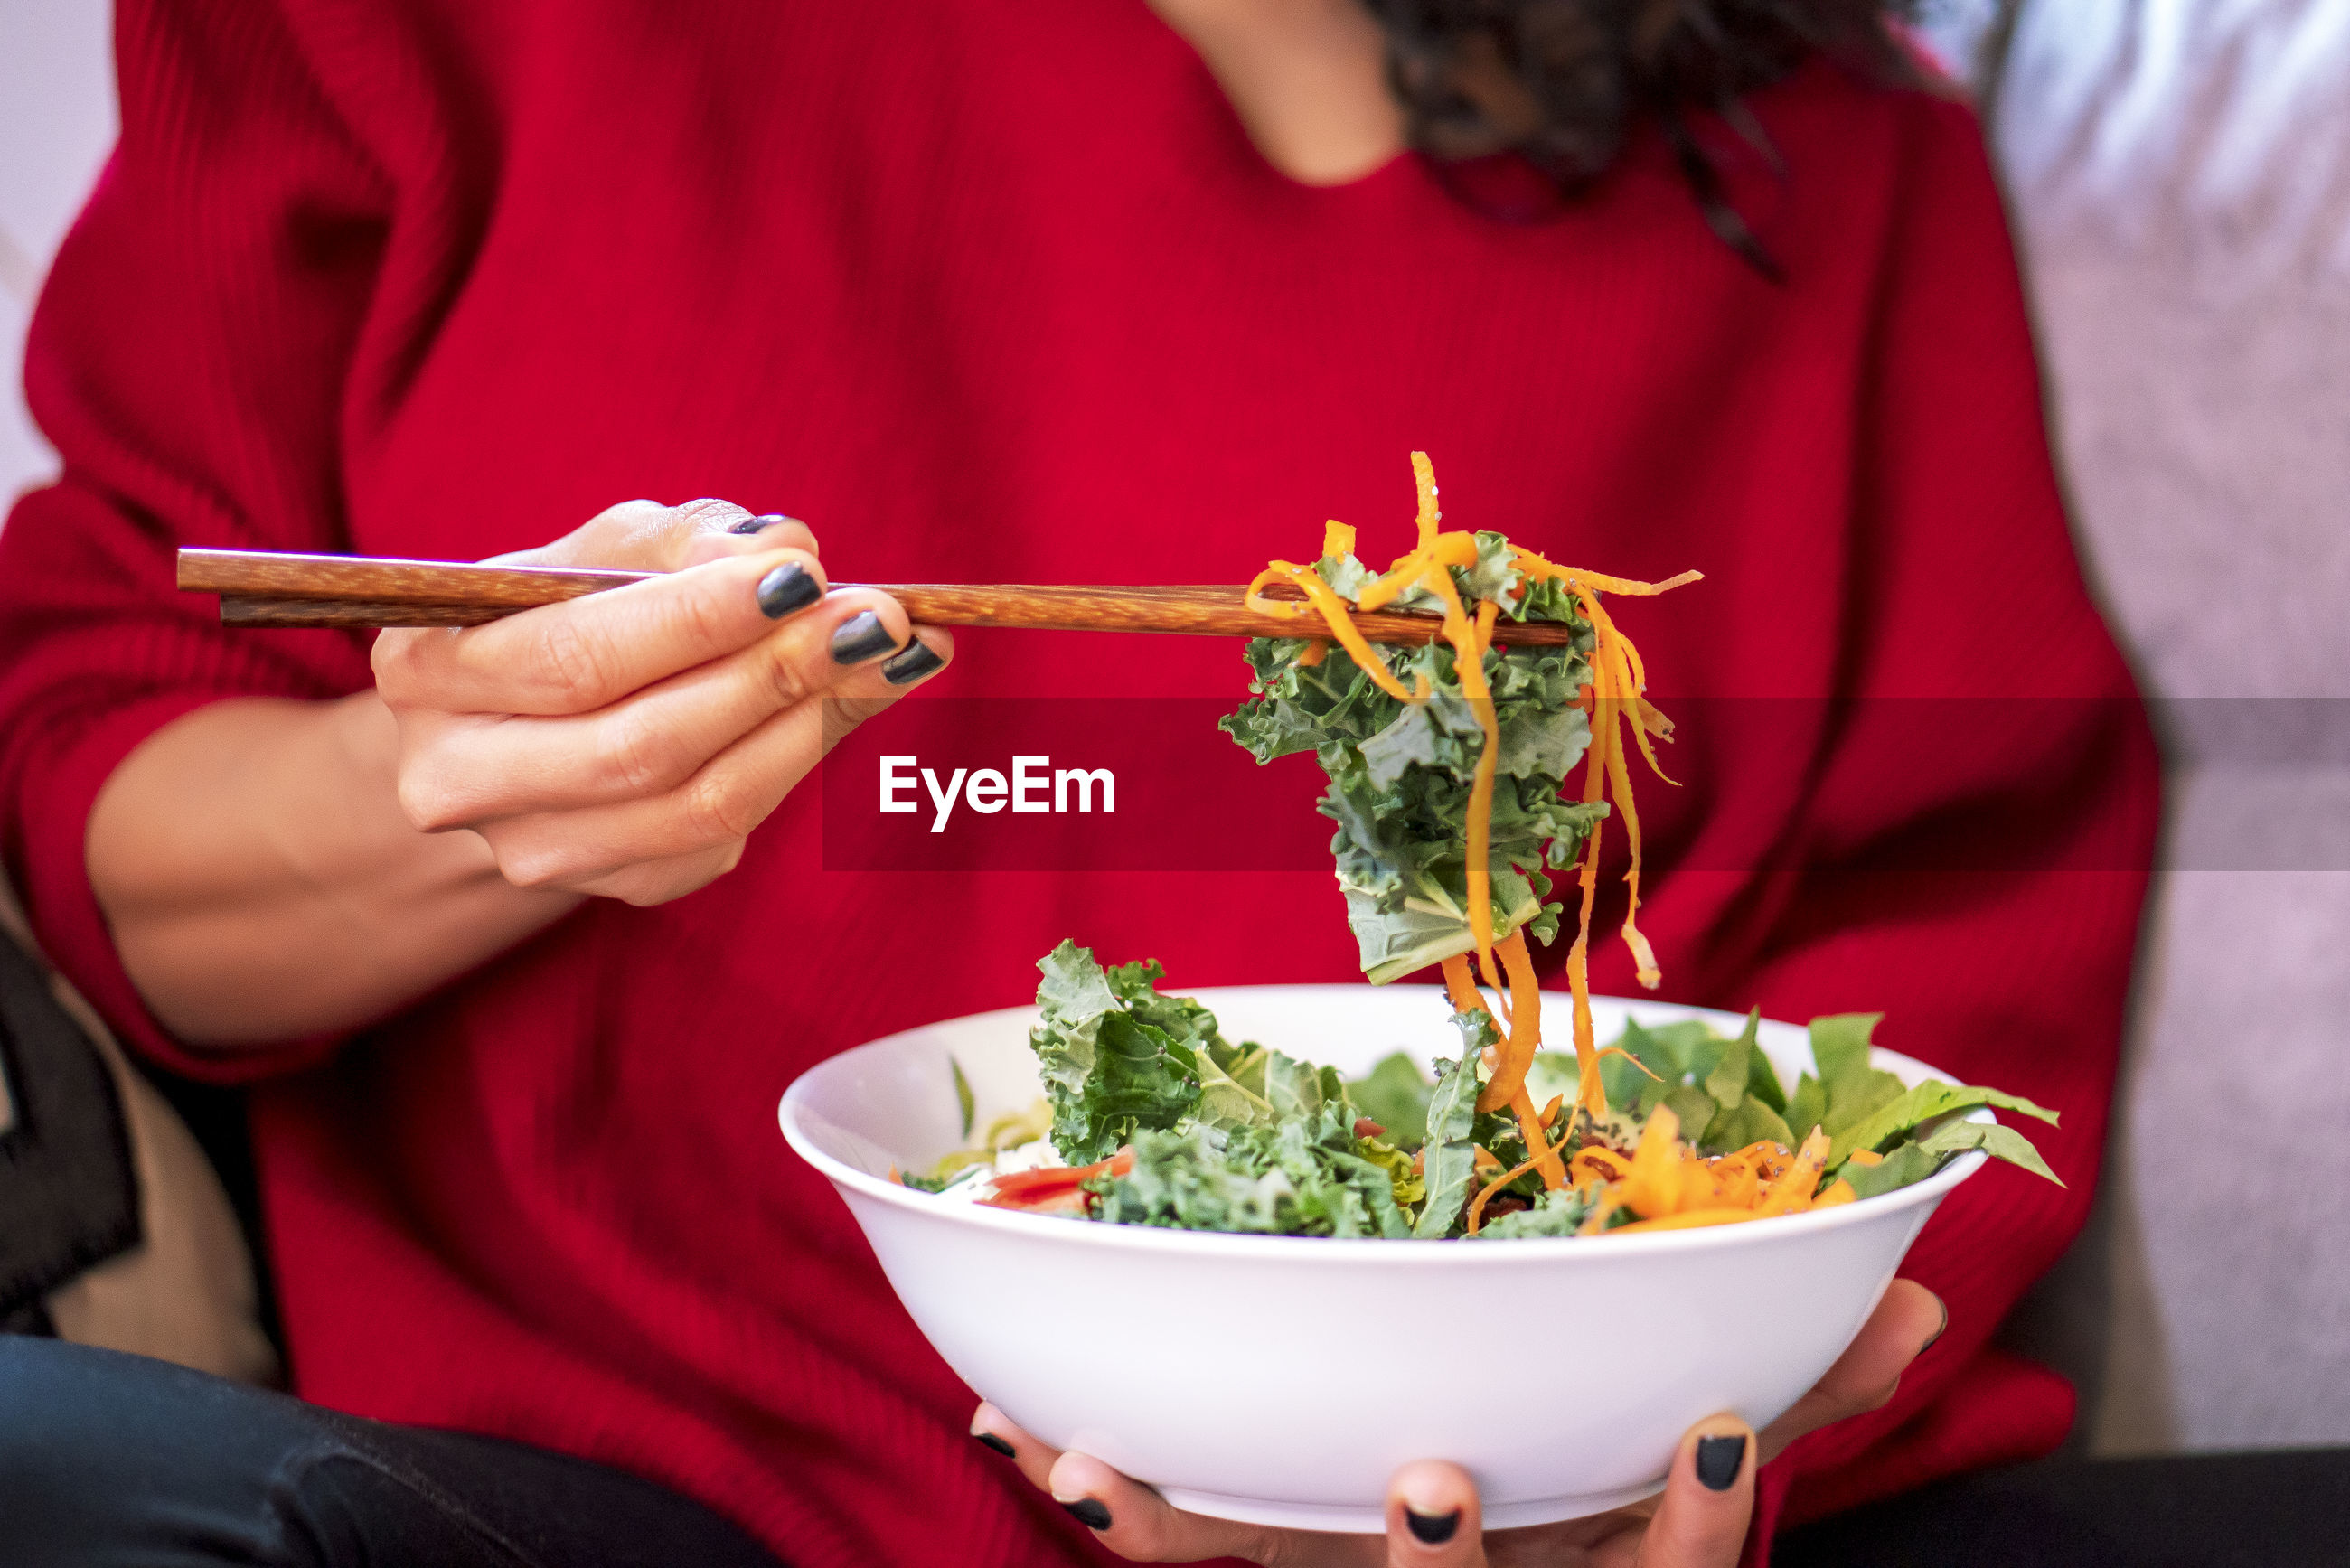 MIDSECTION OF WOMAN HOLDING BOWL WITH RED CHILI PEPPERS